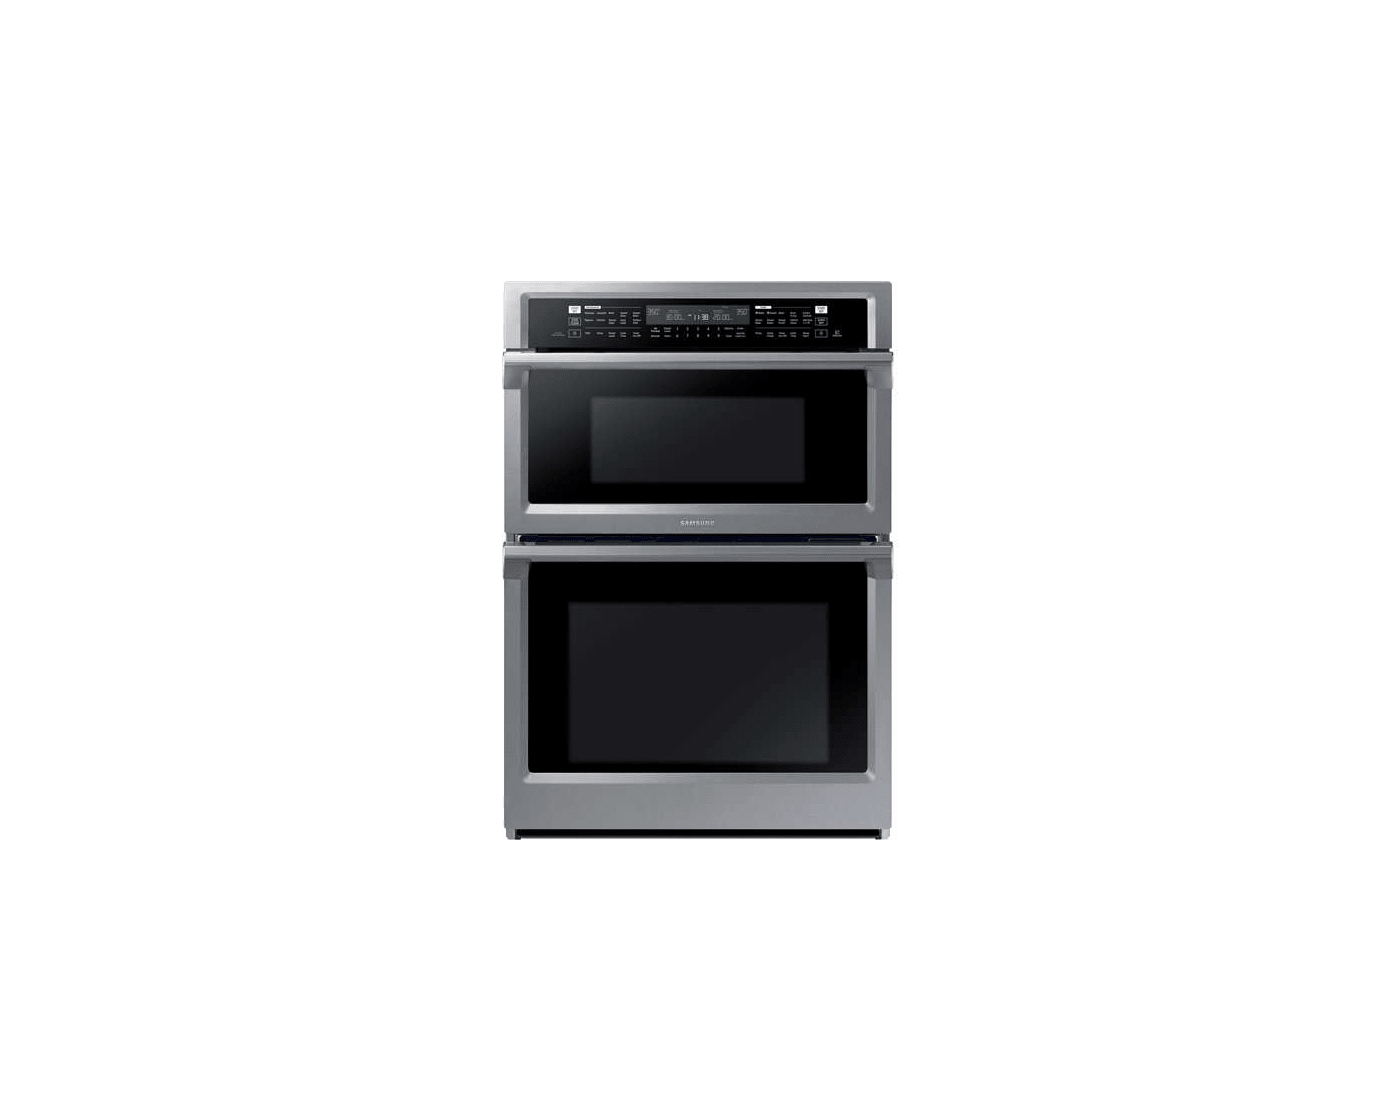 nq70m6650ds by samsung combination wall ovens goedekers com